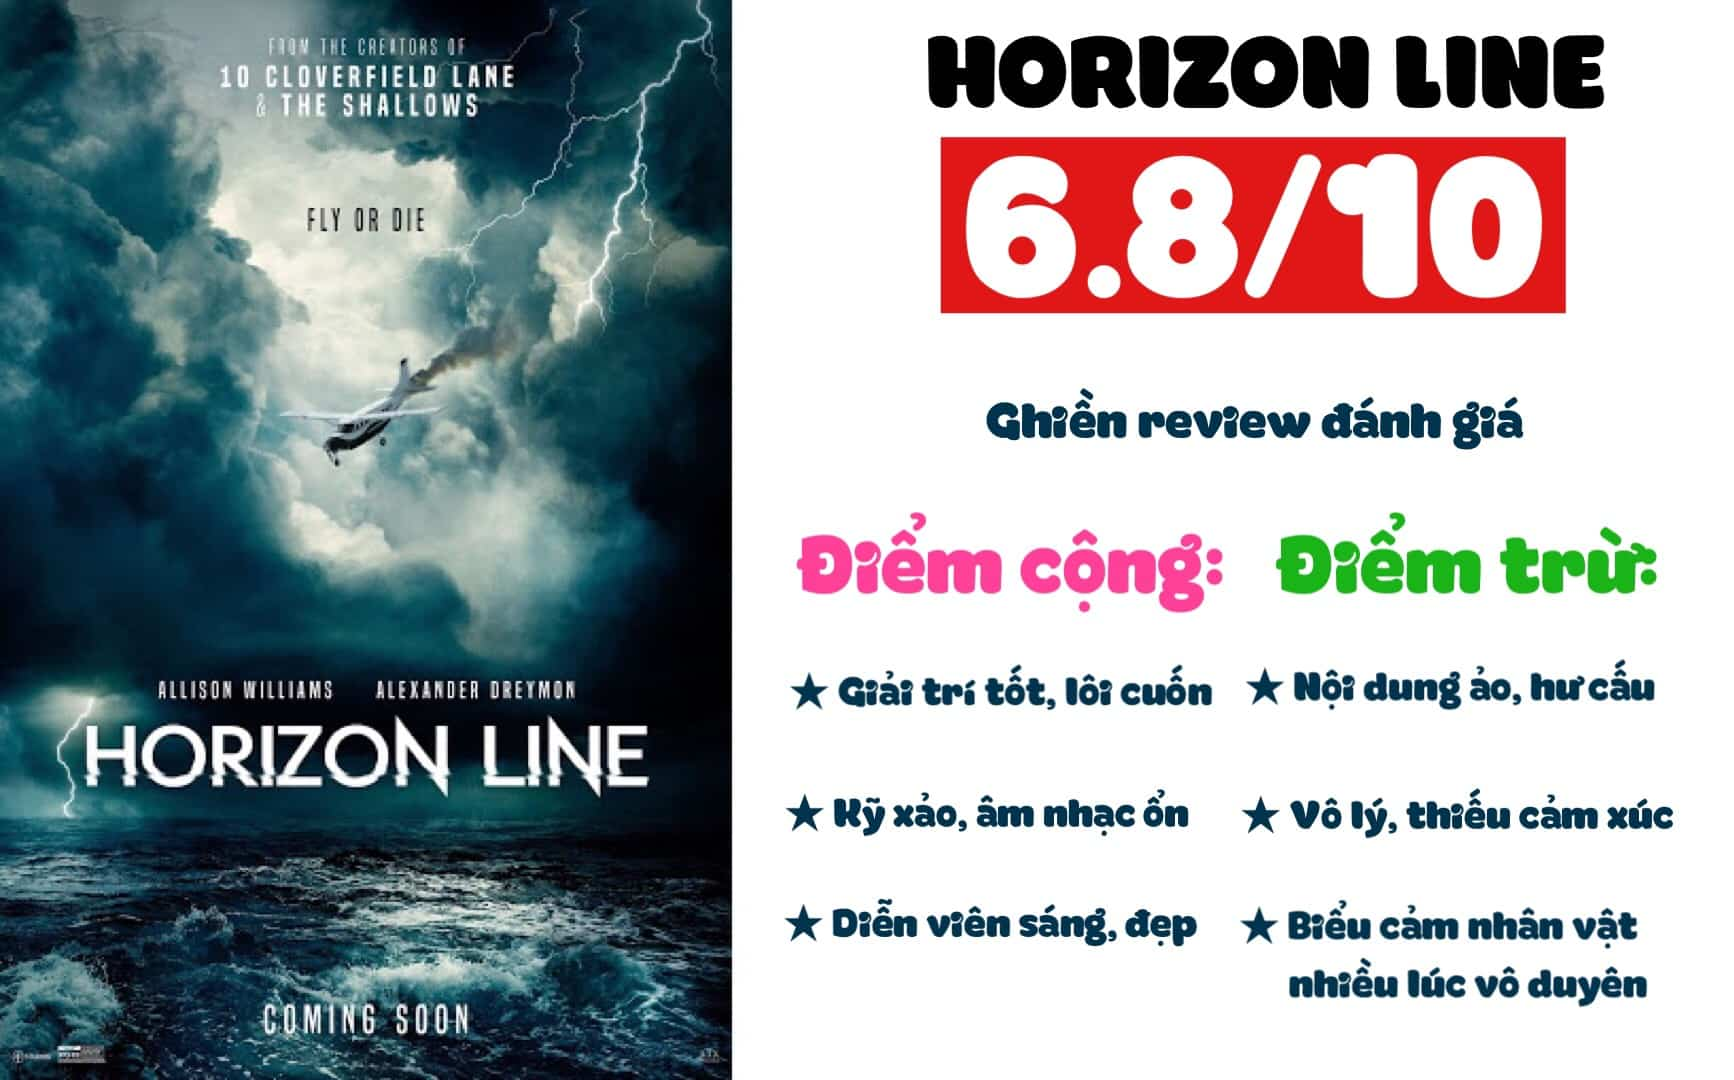 Ghien review - Horizon Line - Vung troi tu than